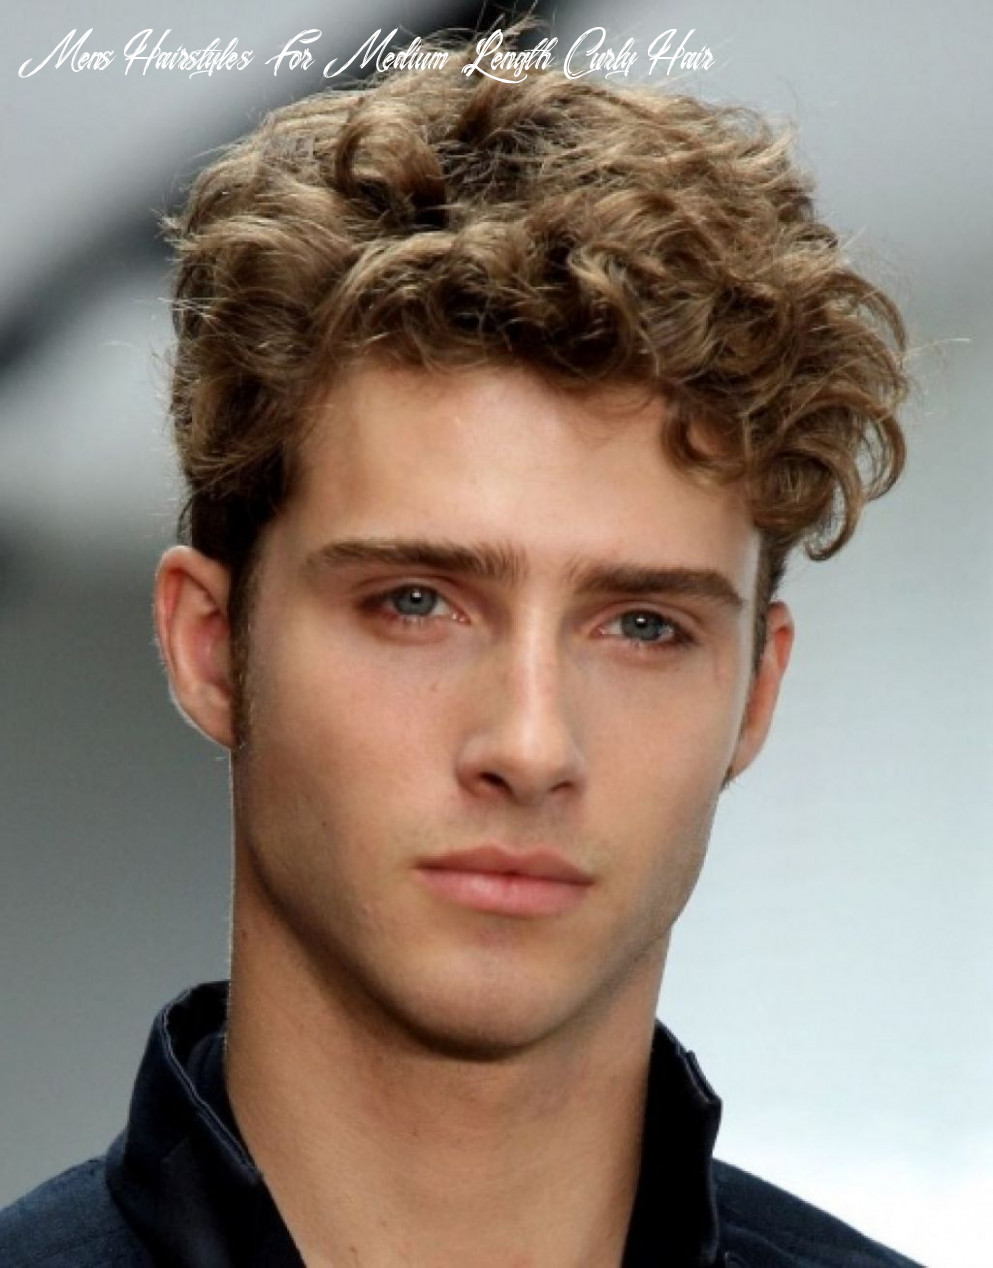 Pin on cutie pies mens hairstyles for medium length curly hair